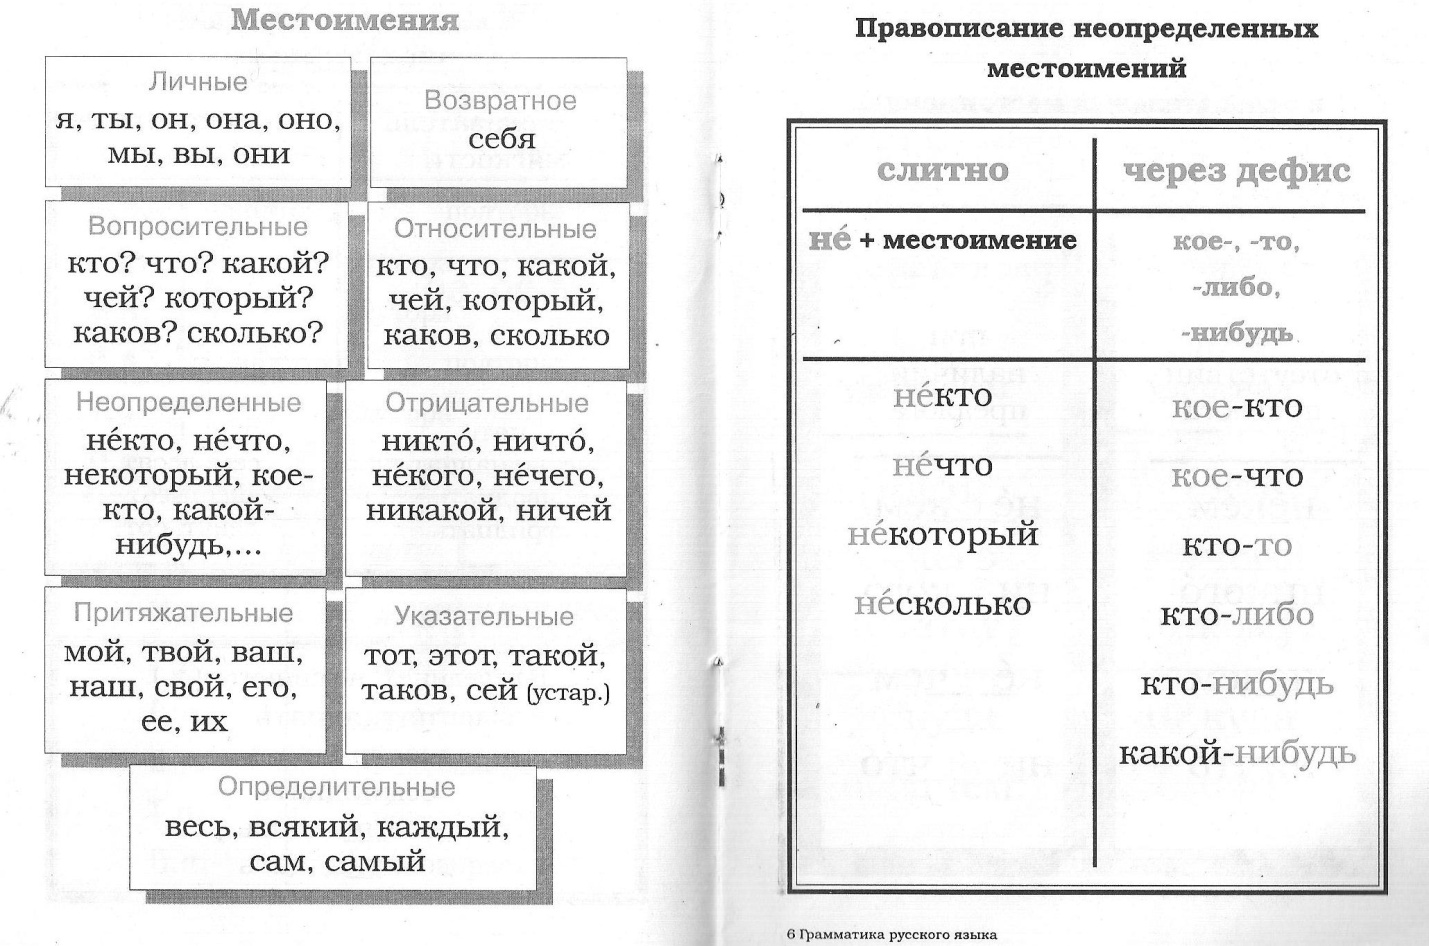 C:\Documents and Settings\Admin\Local Settings\Temporary Internet Files\Content.Word\список актов на землю 002.jpg